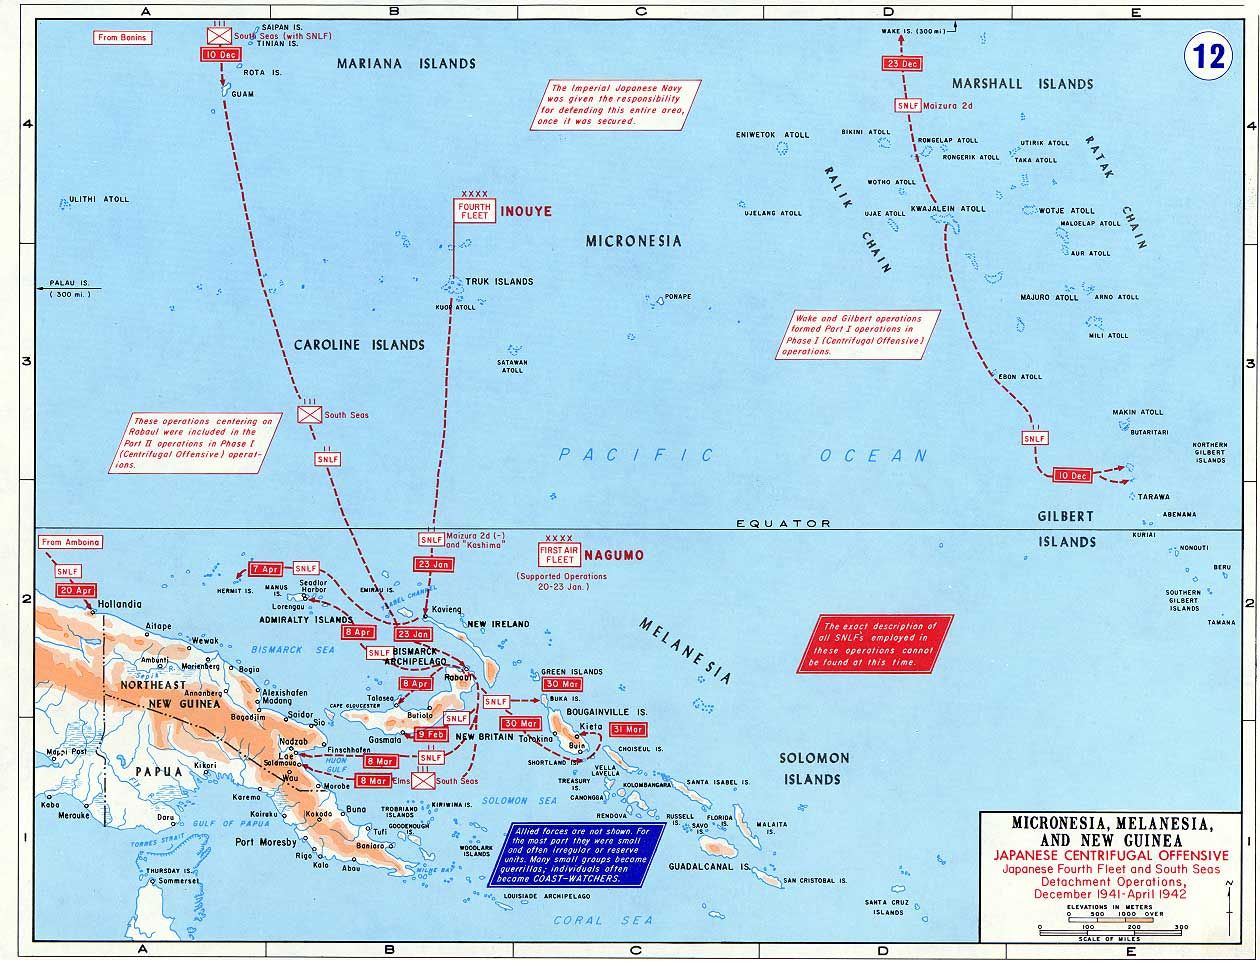 Miconesia melanesia and new guinea japanese centrifugal offensive however conflict in the asia pacific began well before this as far back as japans invasion of china in find this pin and more on world war ii gumiabroncs Images